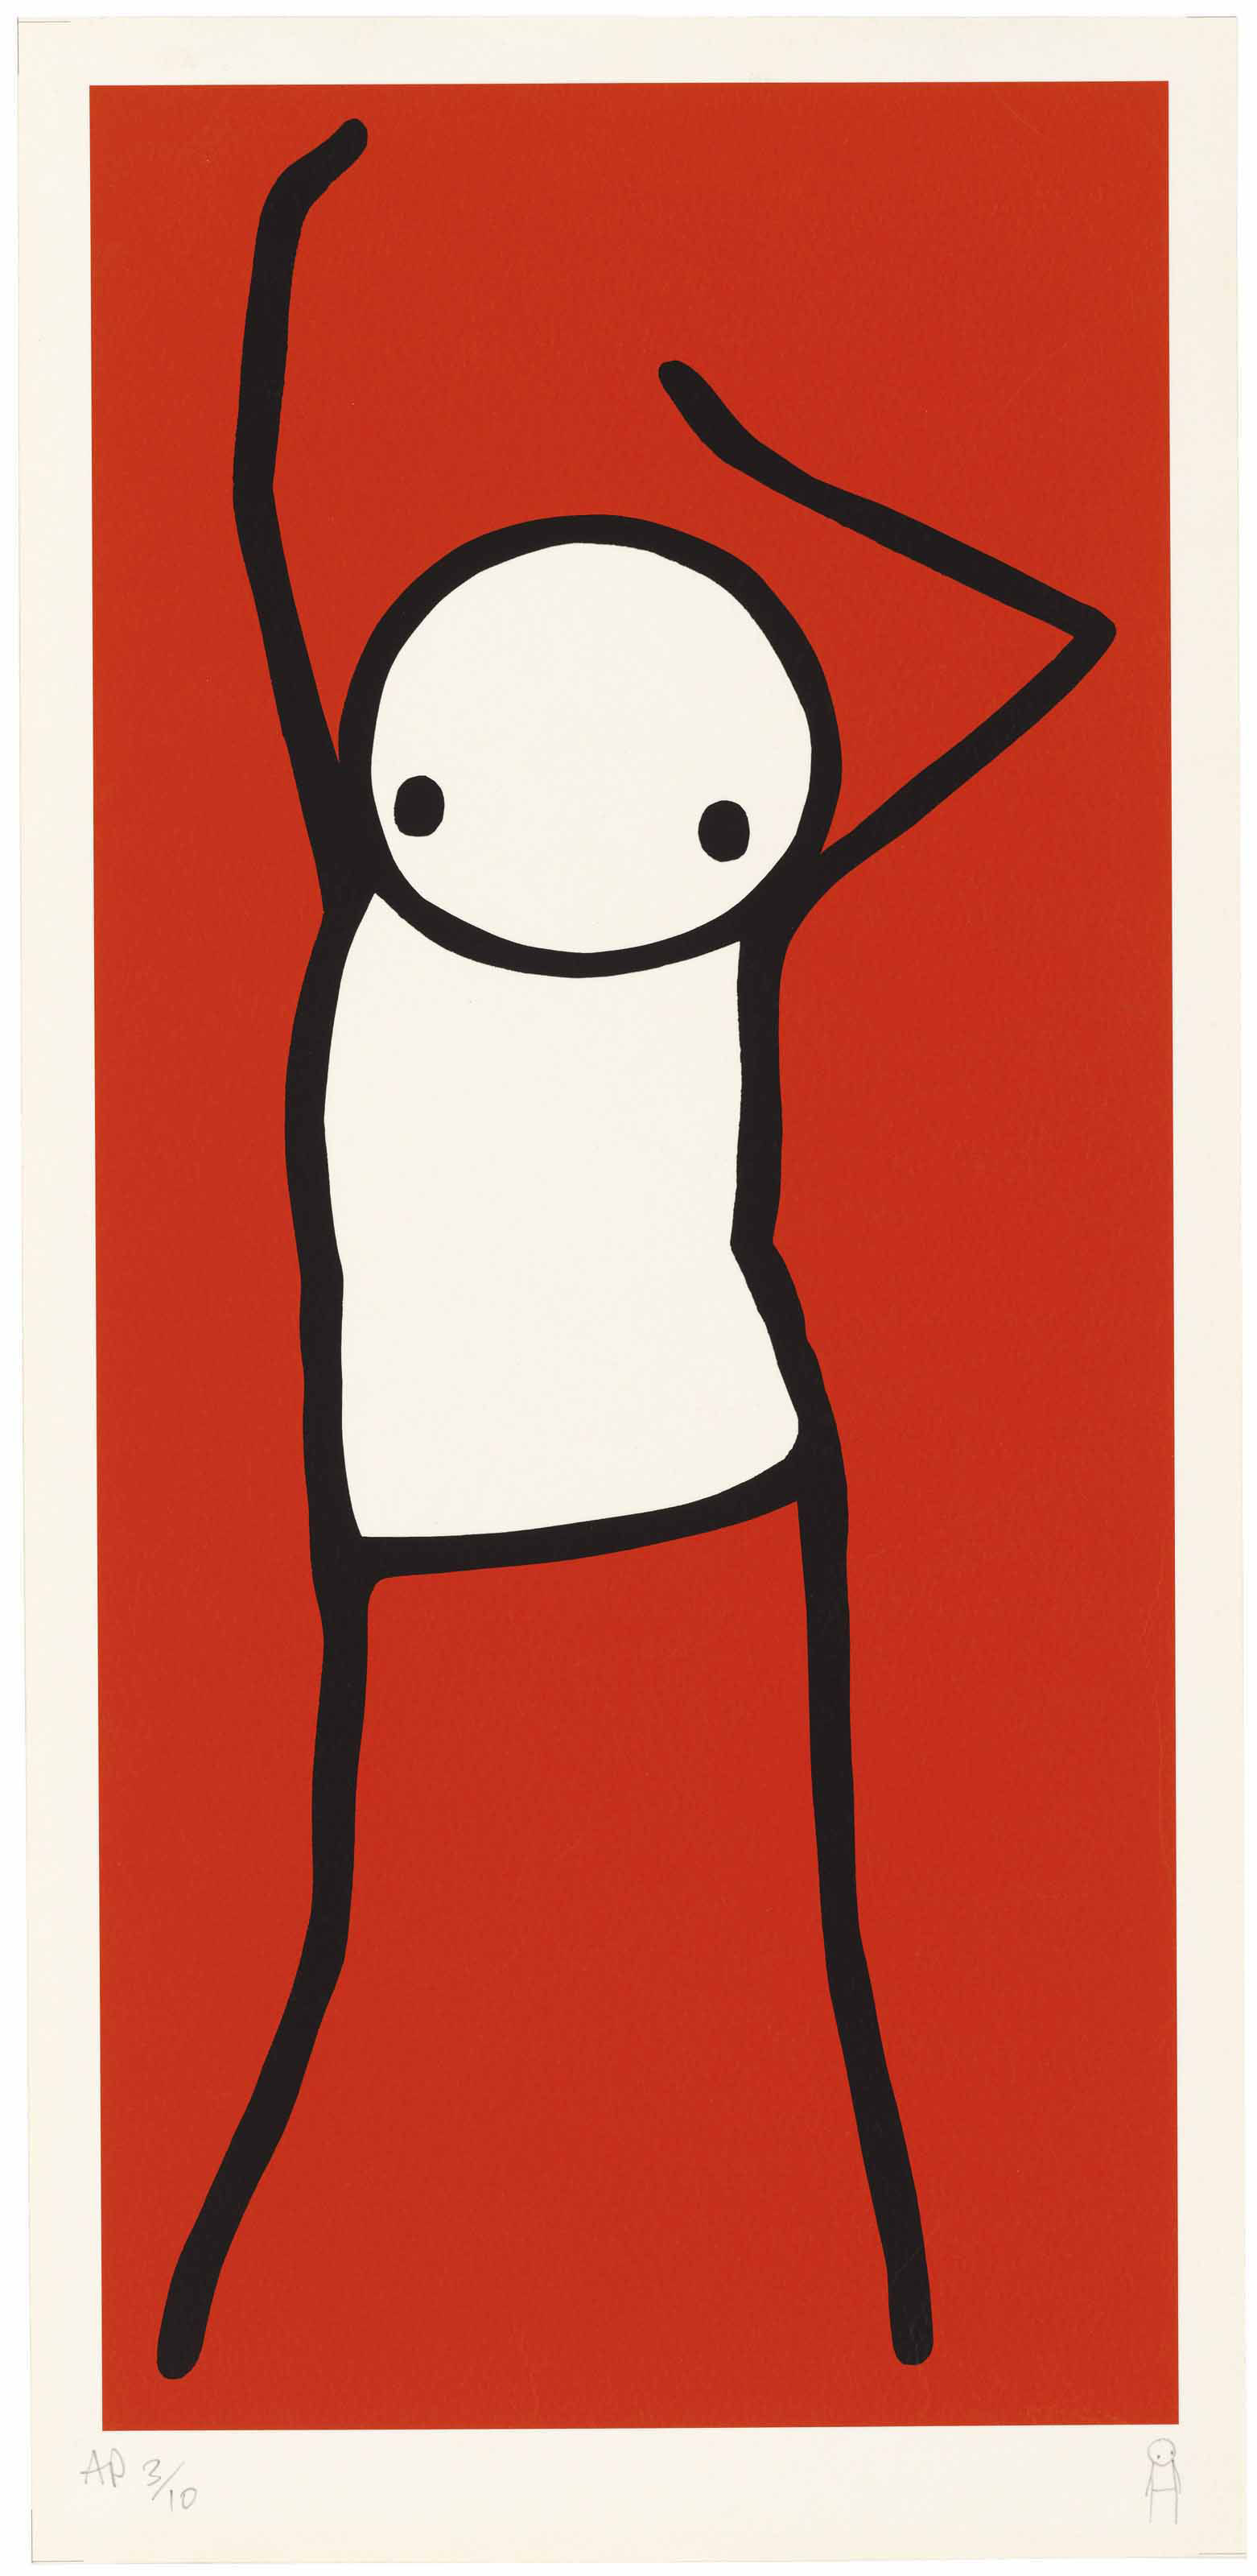 Stik (b. 1979), Dancer. Image 460 x 212  mm, Sheet 500 x 239  mm. Sold for £10,625 on 28 March 2018  at Christie's in London